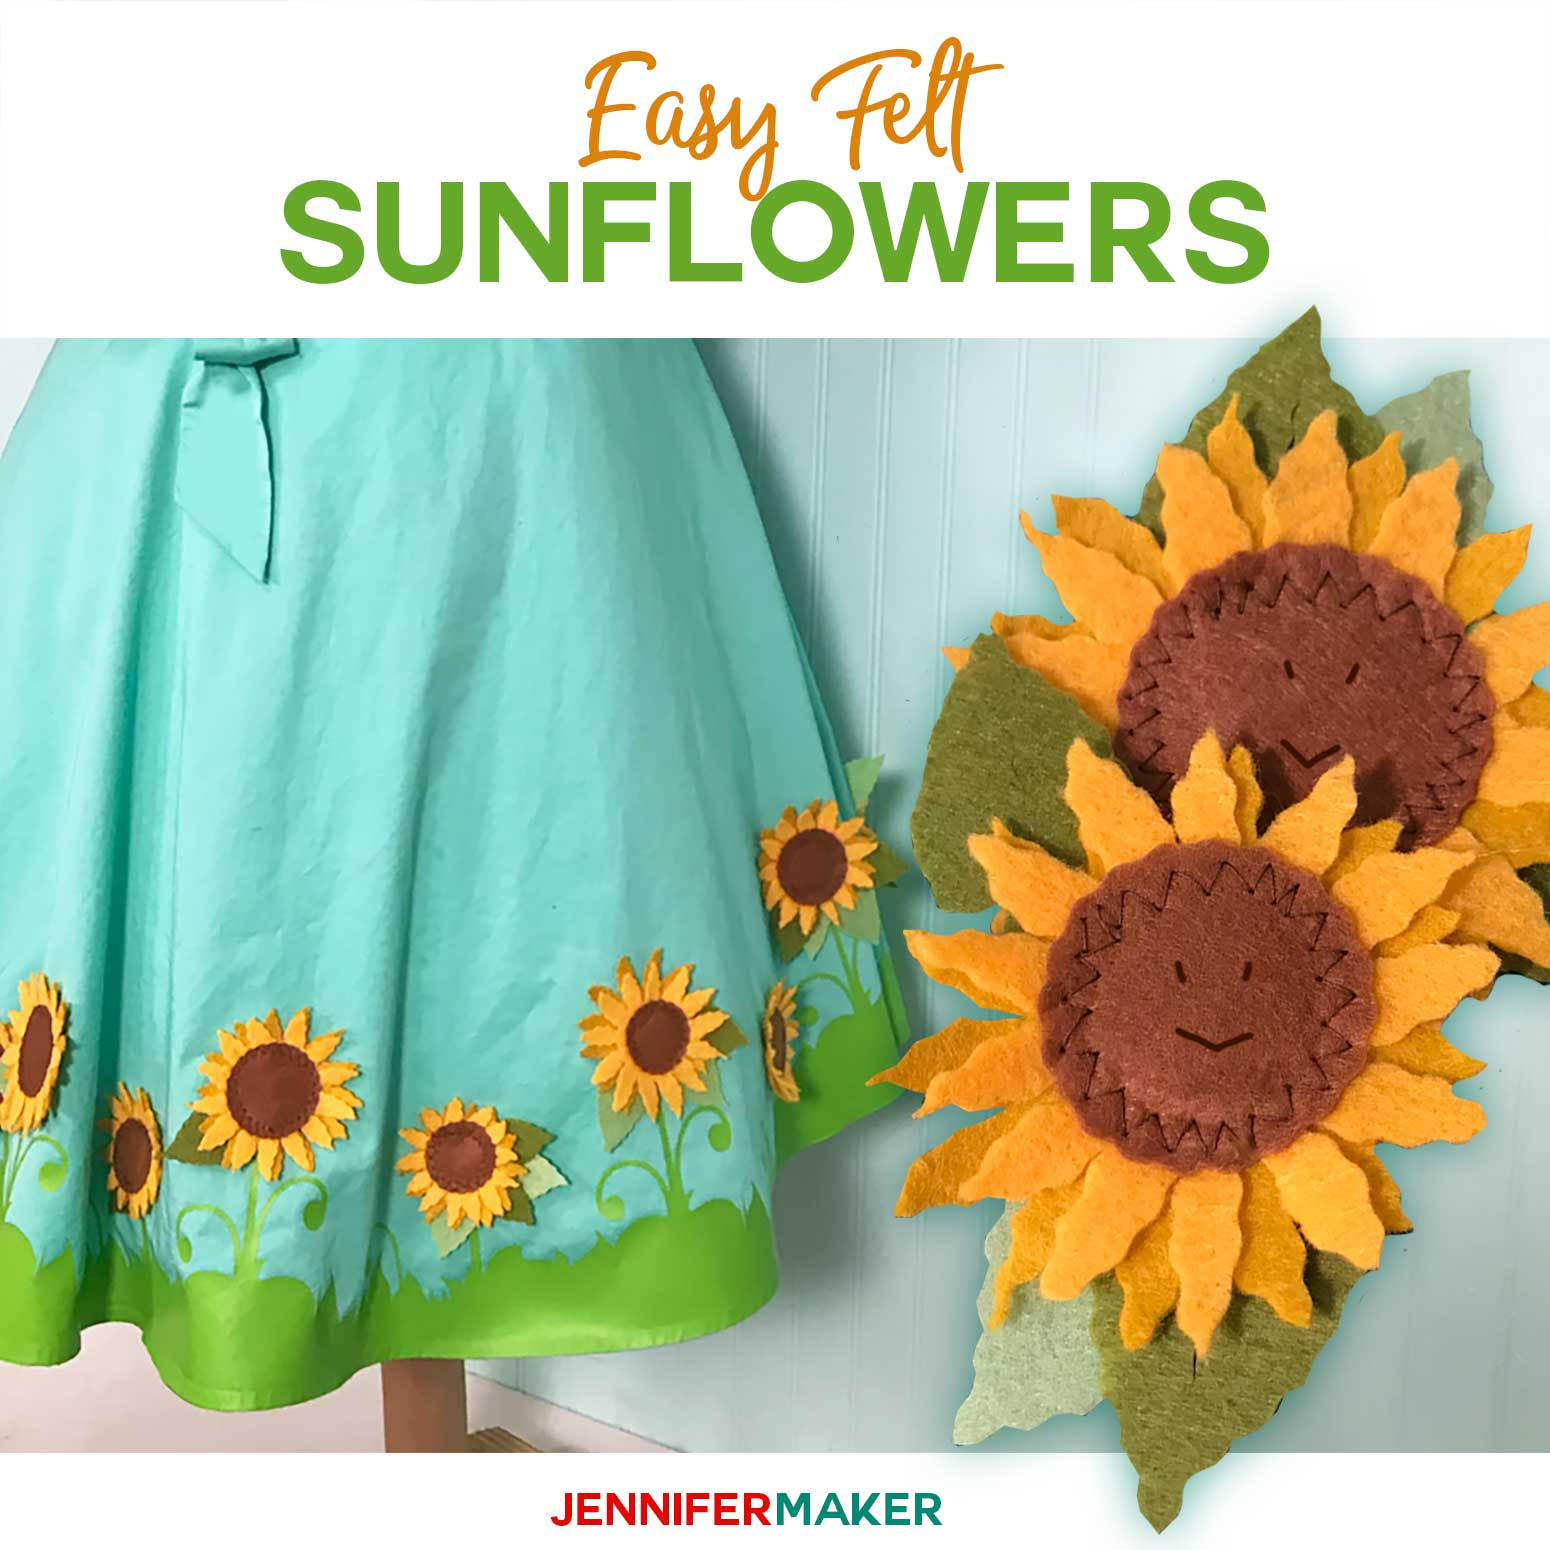 Felt Sunflowers made with the Cricut Wavy Blade to embellish a Cricut Dress | #cricut #felt #sunflower #cricutmaker